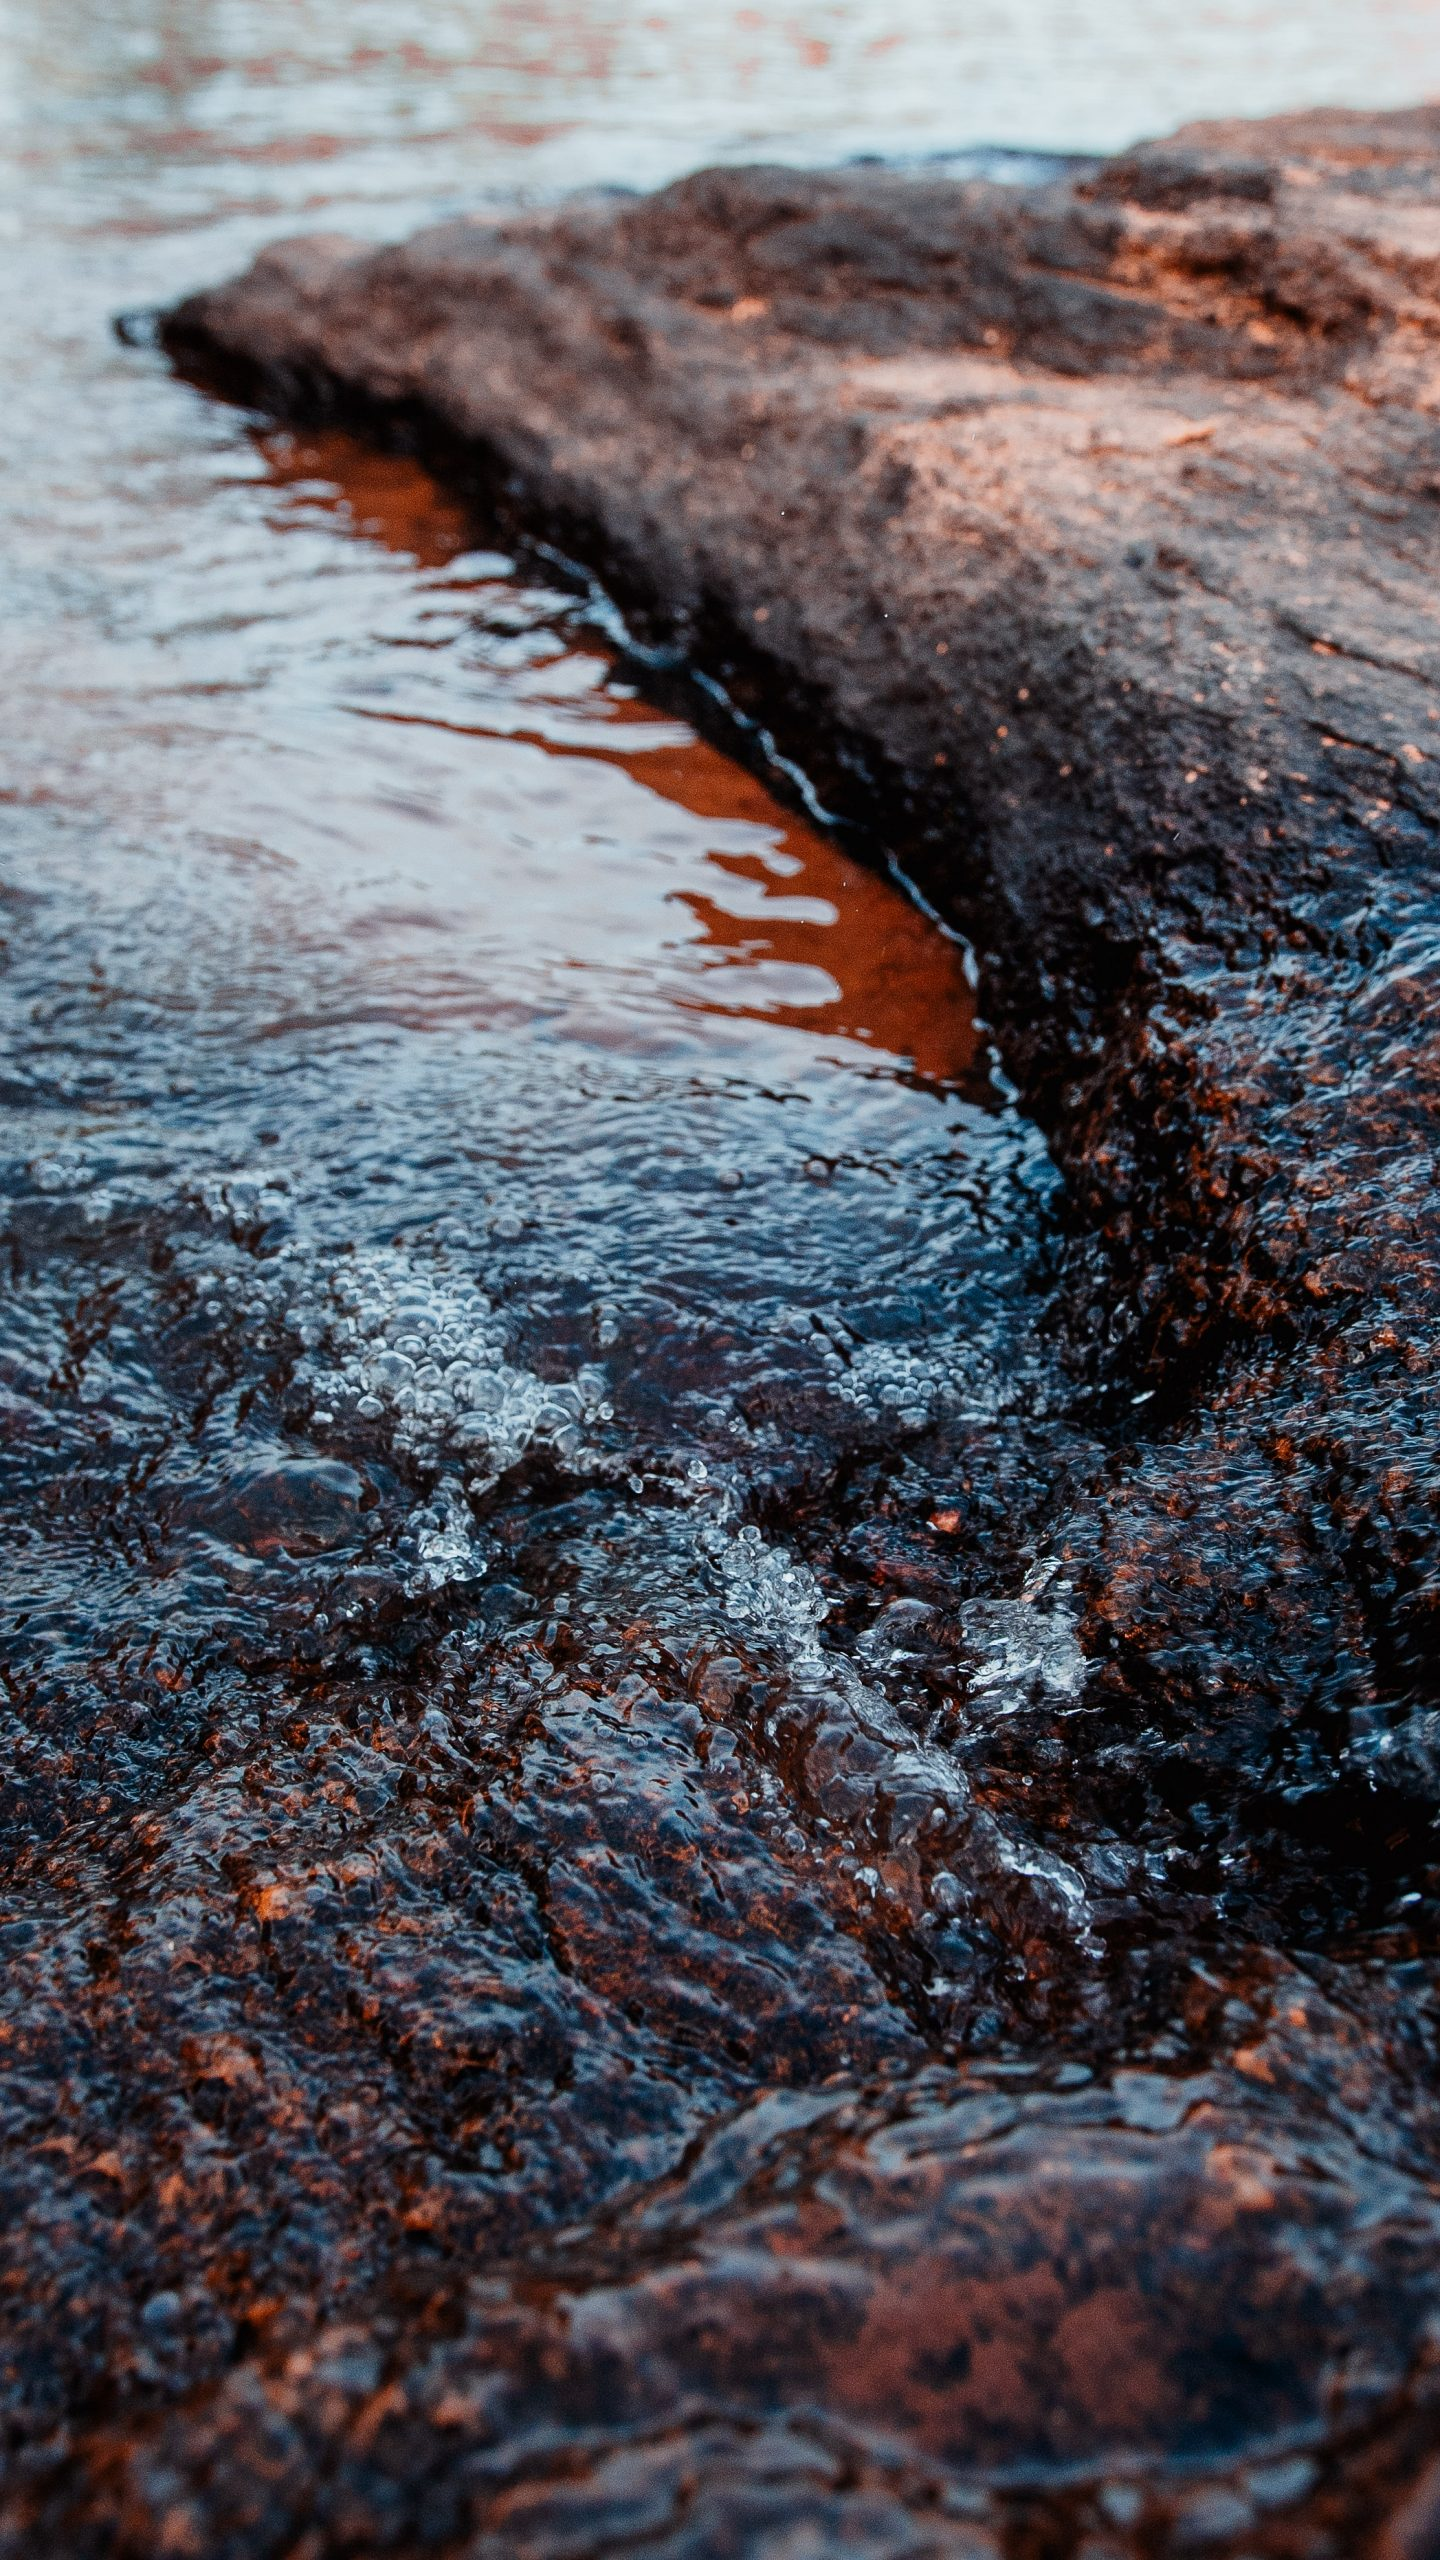 heleno kaizer zPye2CNMv3I unsplash scaled - Billion Dollars Of Environmental Damages To The Gulf Of Mexico: What Caused It?